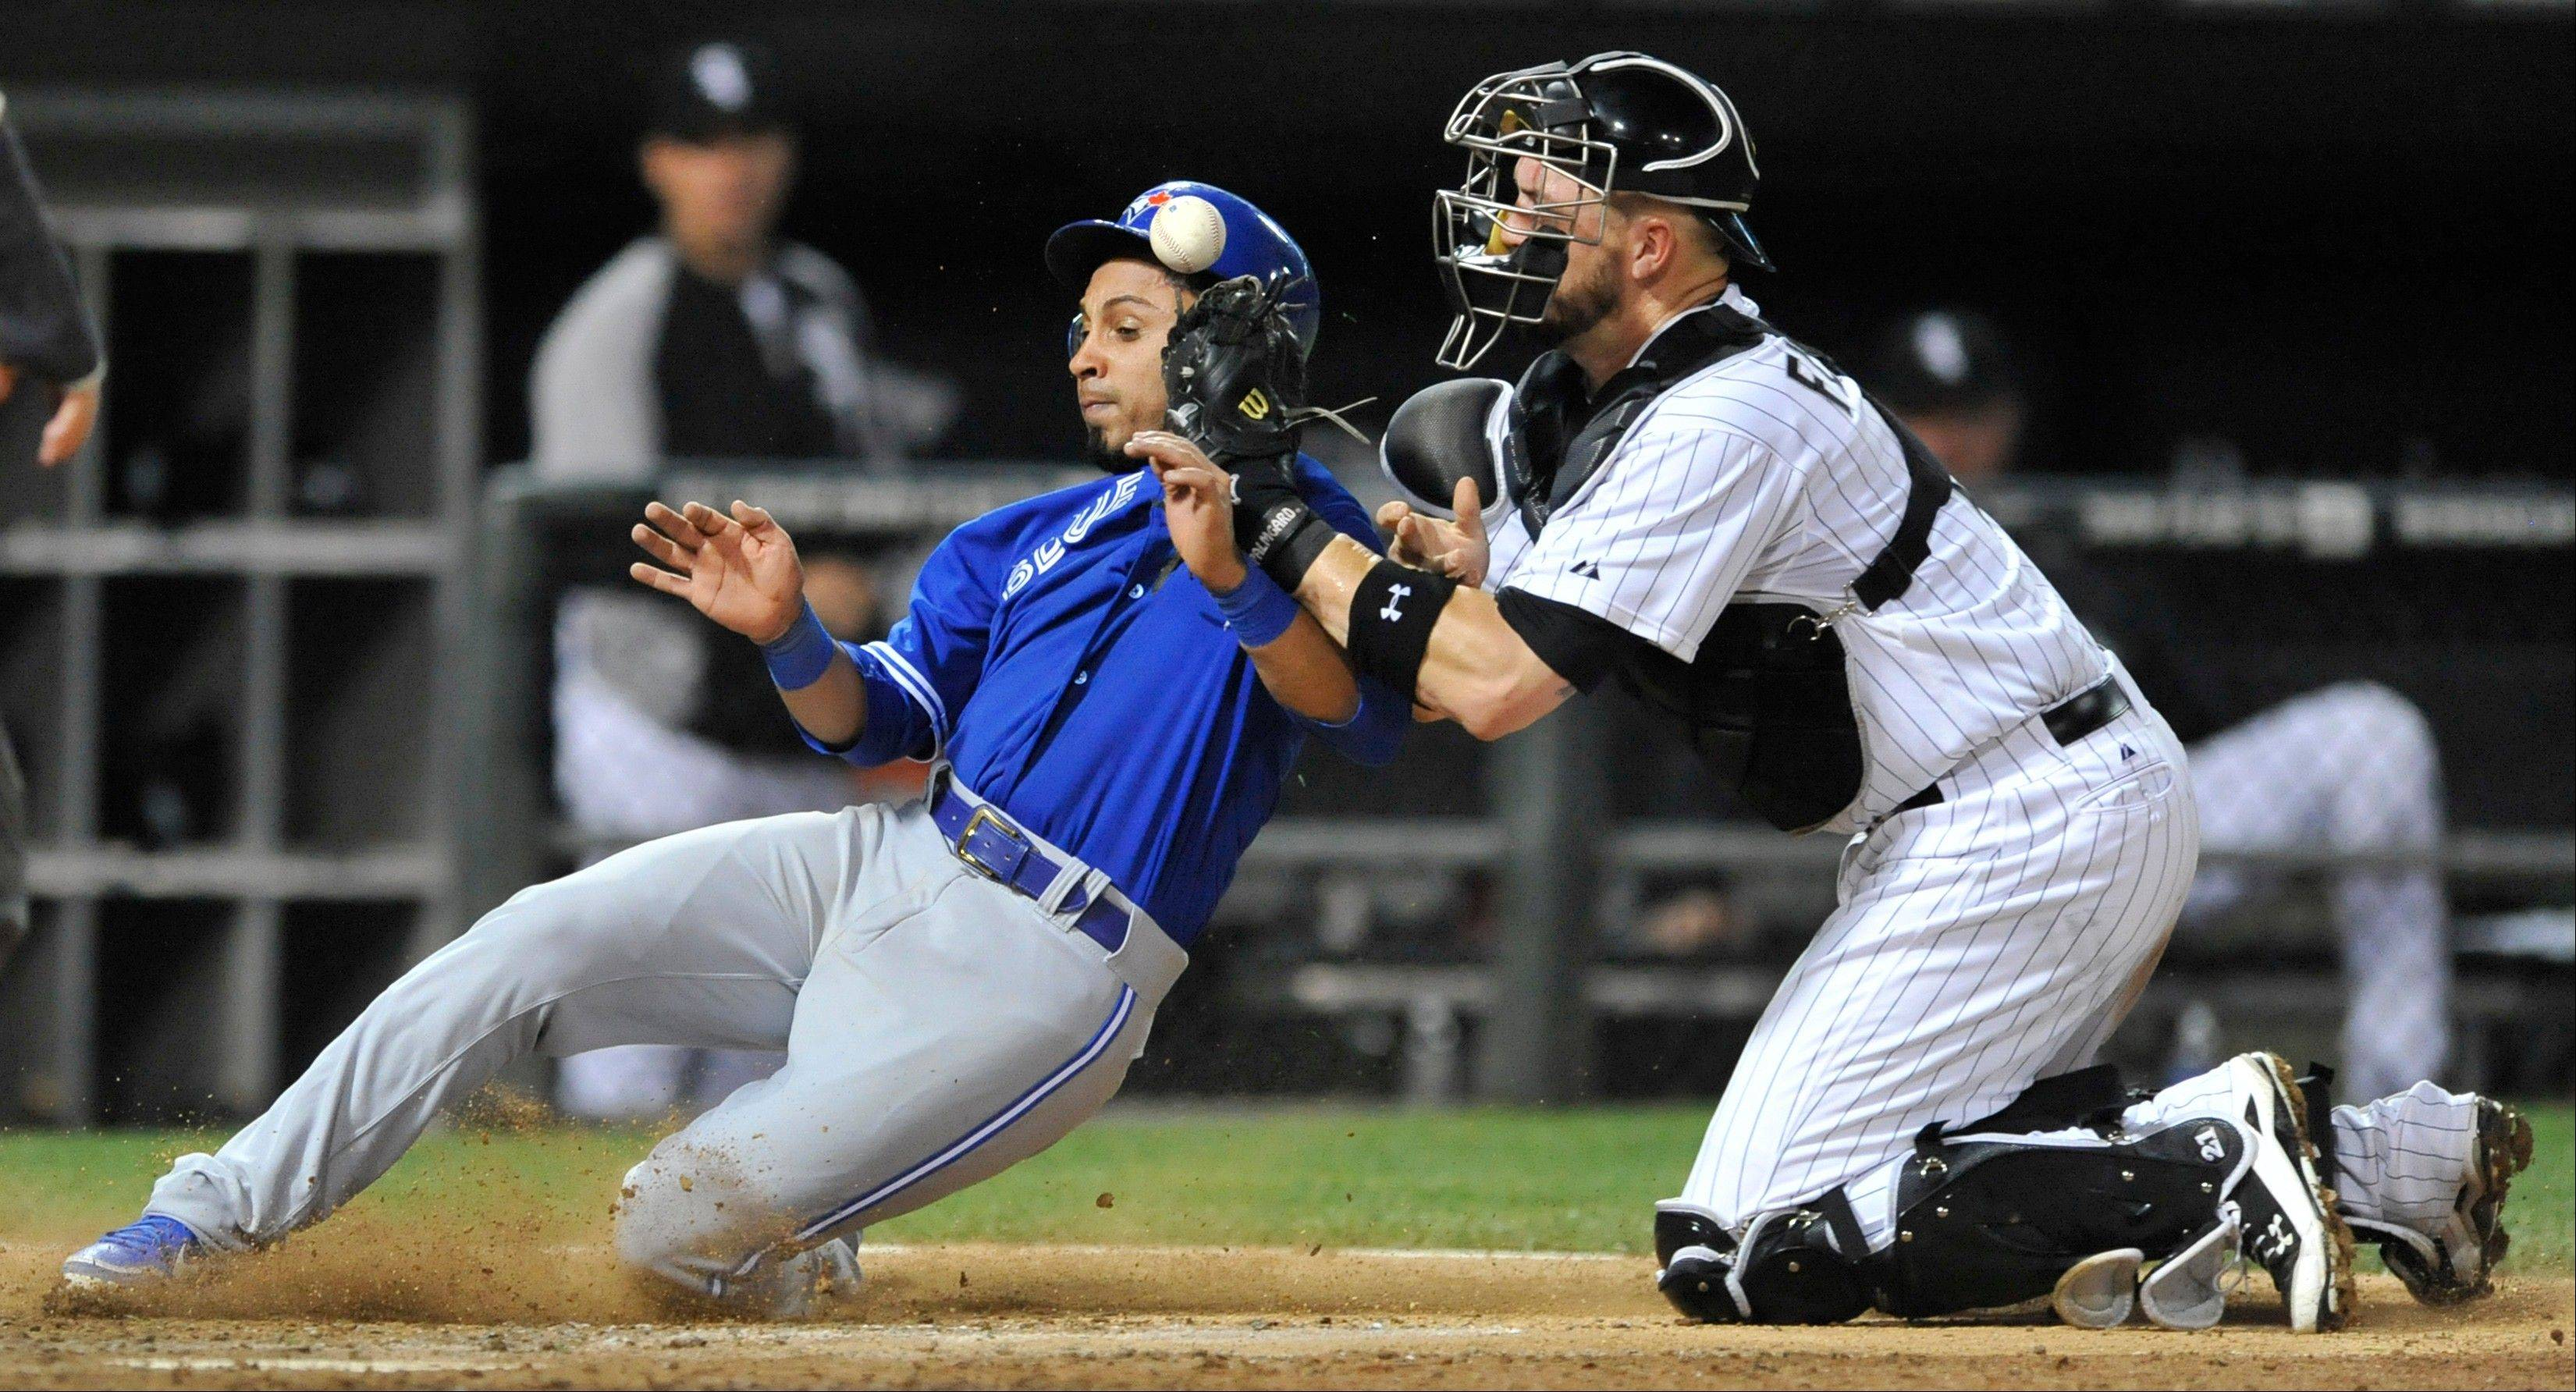 Toronto's Maicer Izturis as Sox catcher Tyler Flowers tries to apply the tag during the Blue Jays' victory Tuesday. Flowers has been a disappointment in his first full season behind the plate, batting just .202 with 22 RBI.